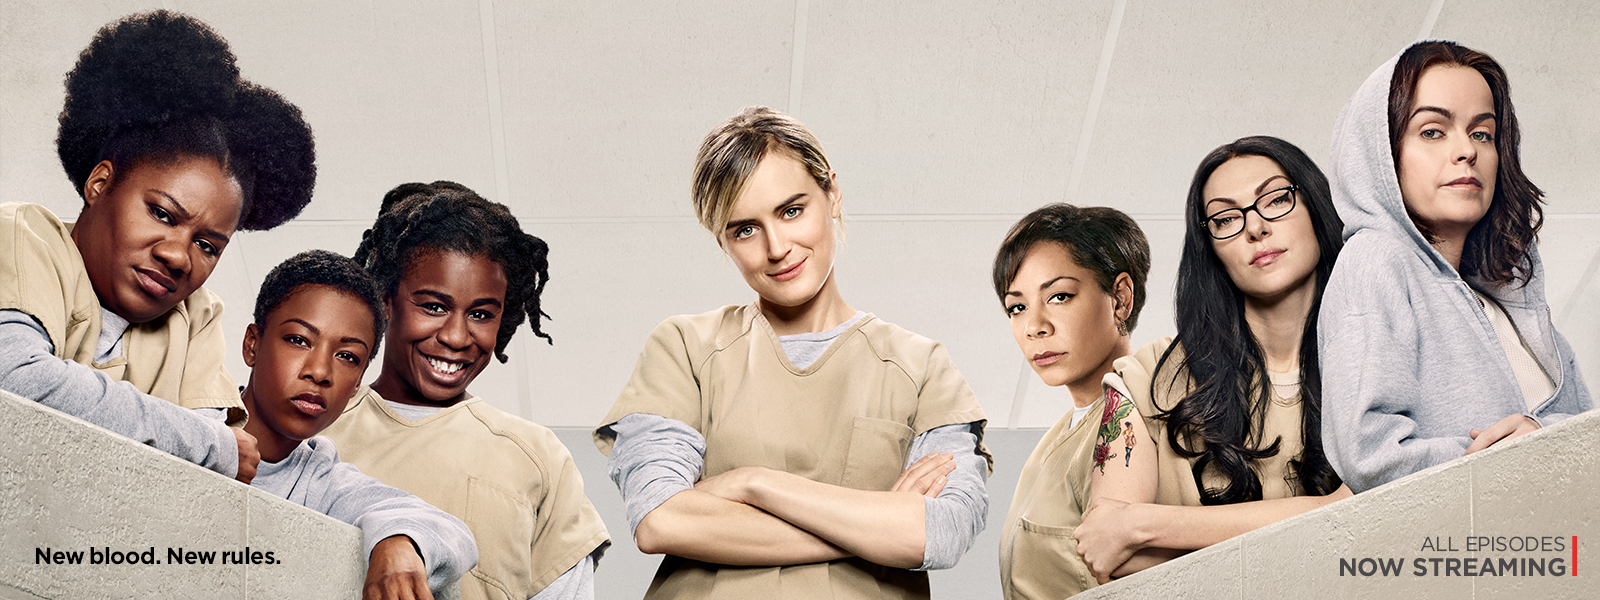 Orange is the new black writer dating poussey and bennett 8